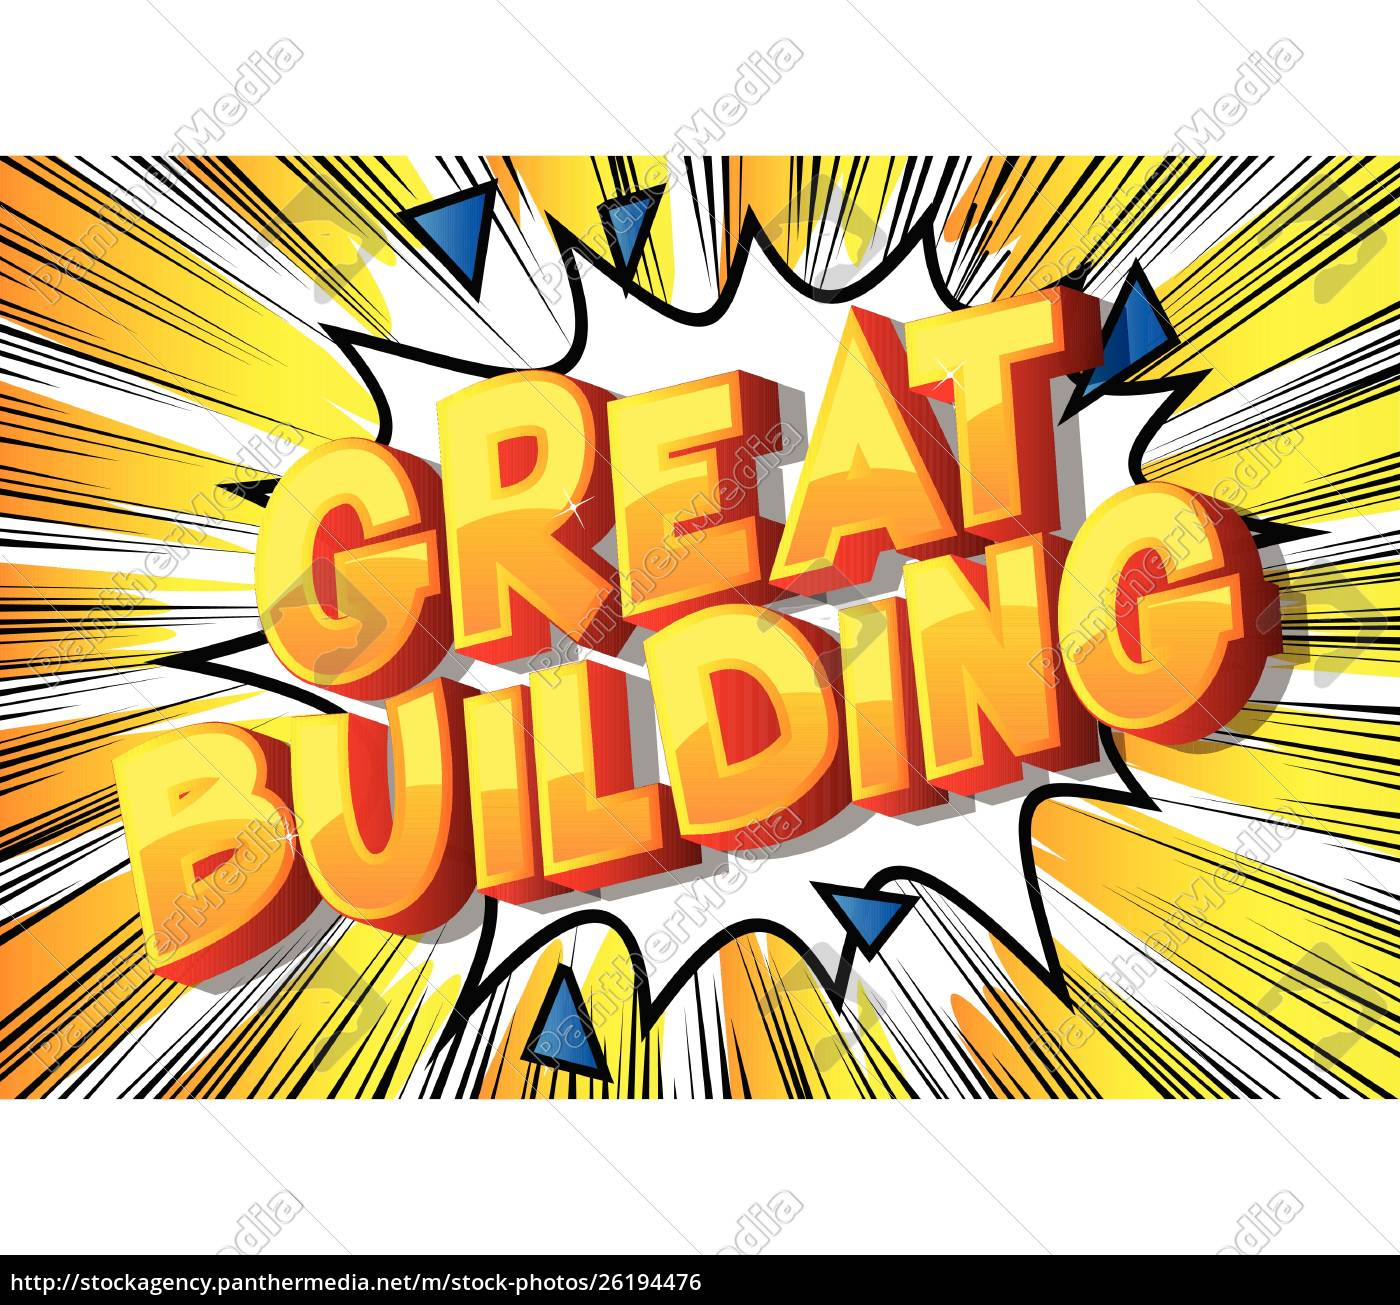 great, building, -, comic, book, style - 26194476